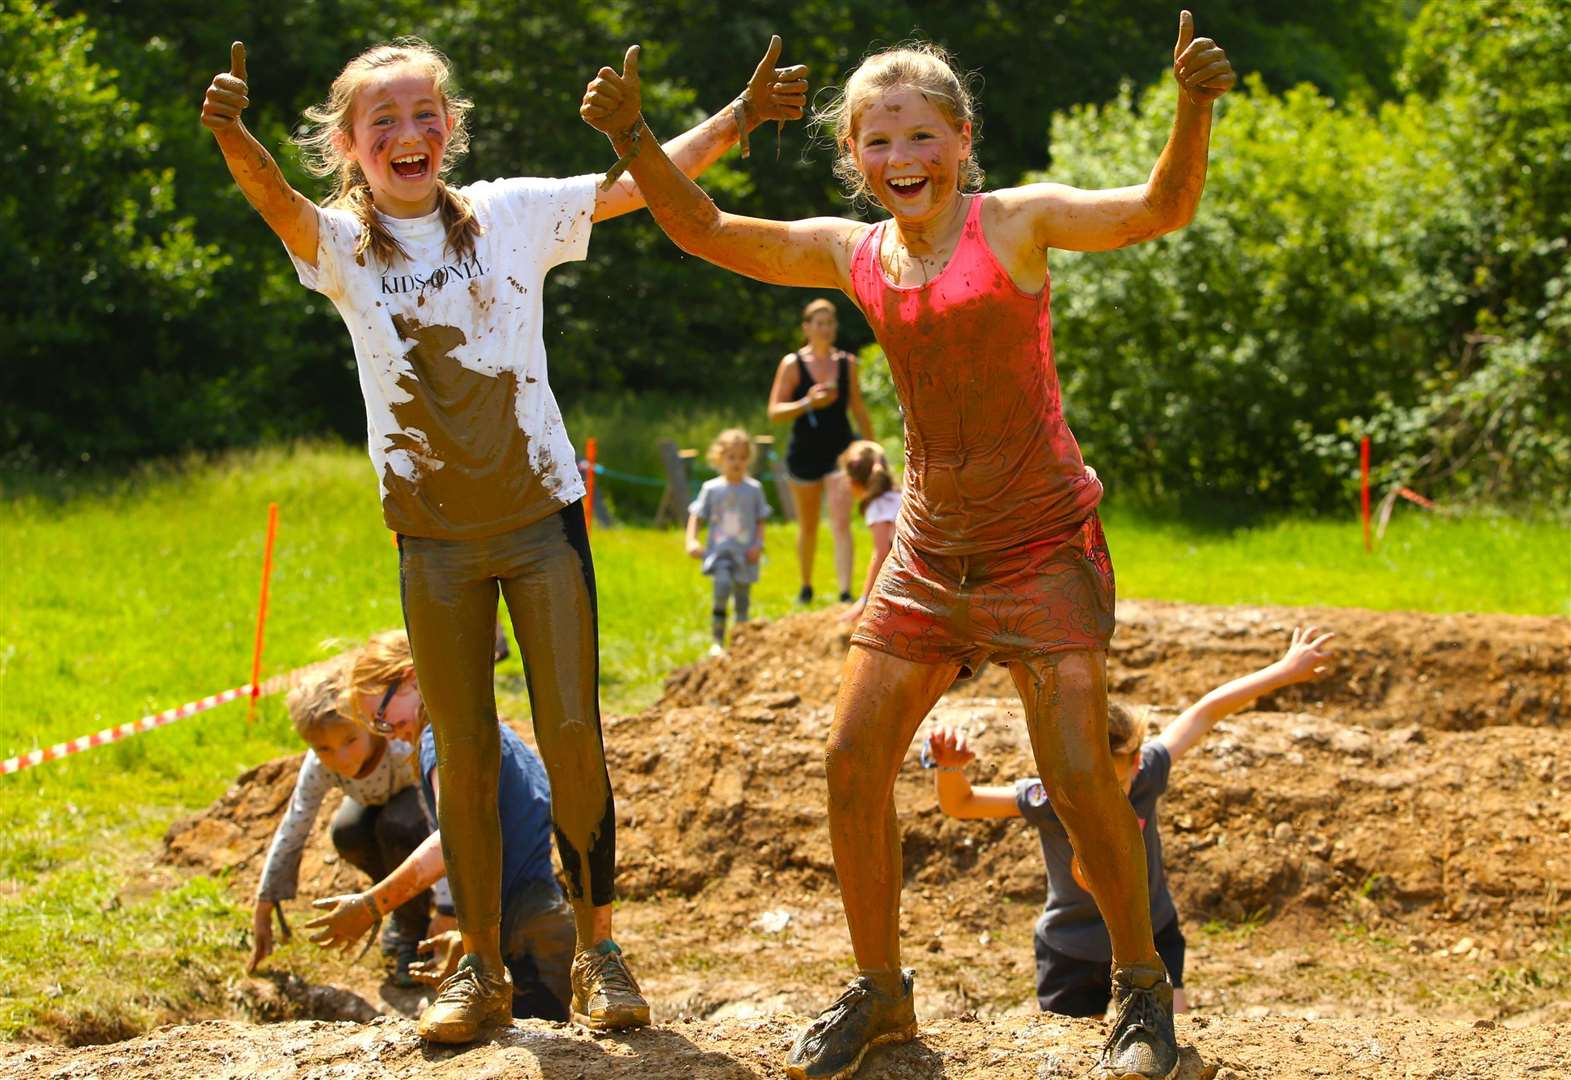 Biggest children's obstacle course coming to Kent